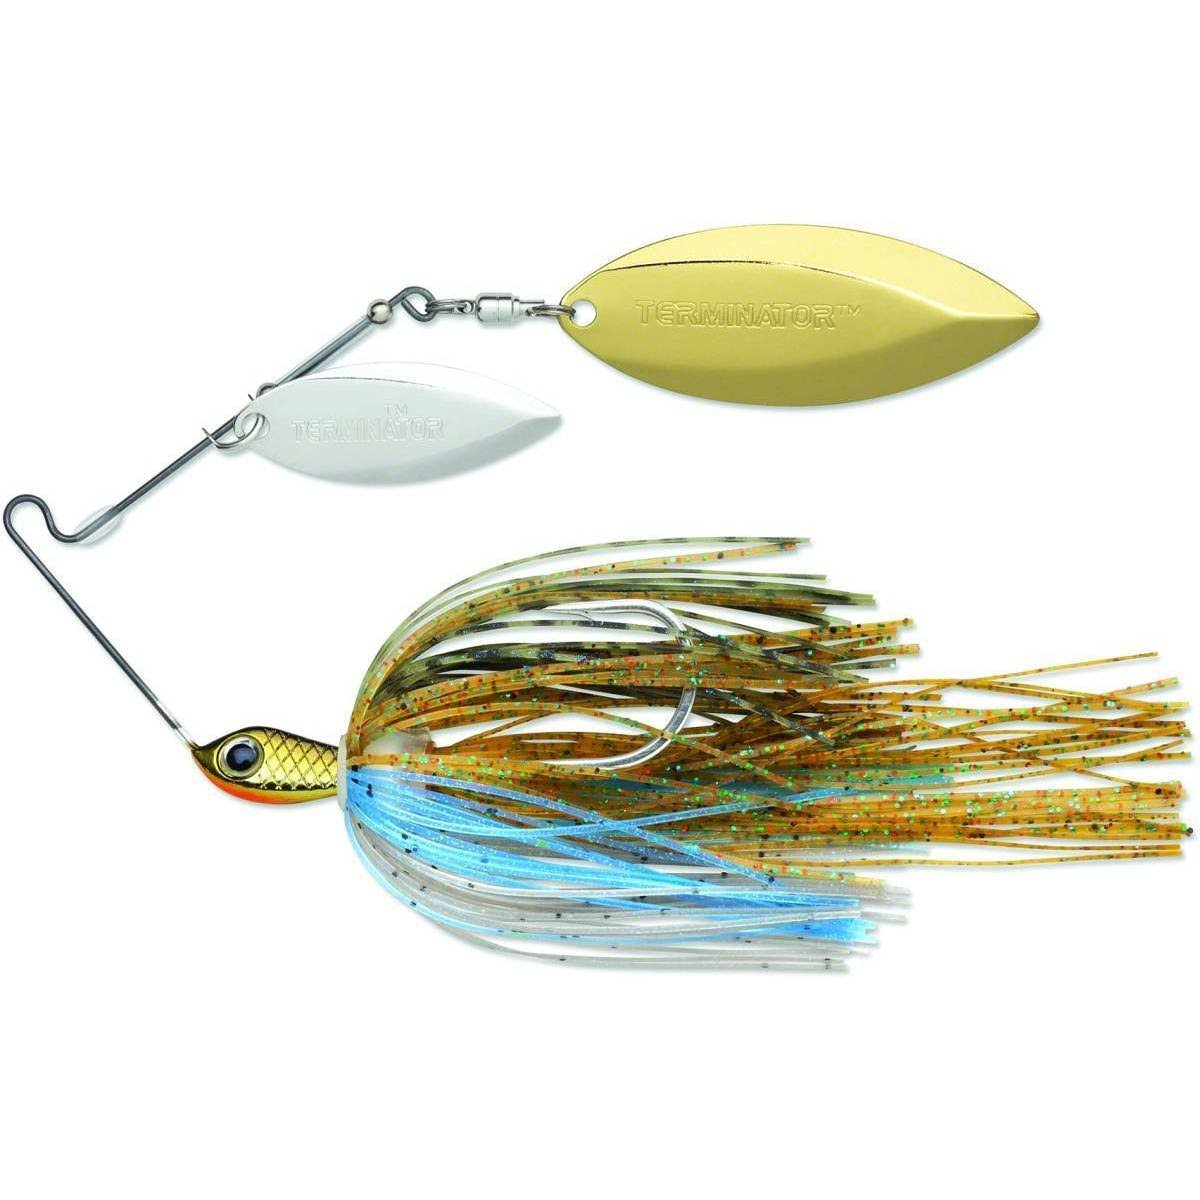 Terminator S38ww94ng Super Stainless Spinnerbait, 3/8 oz